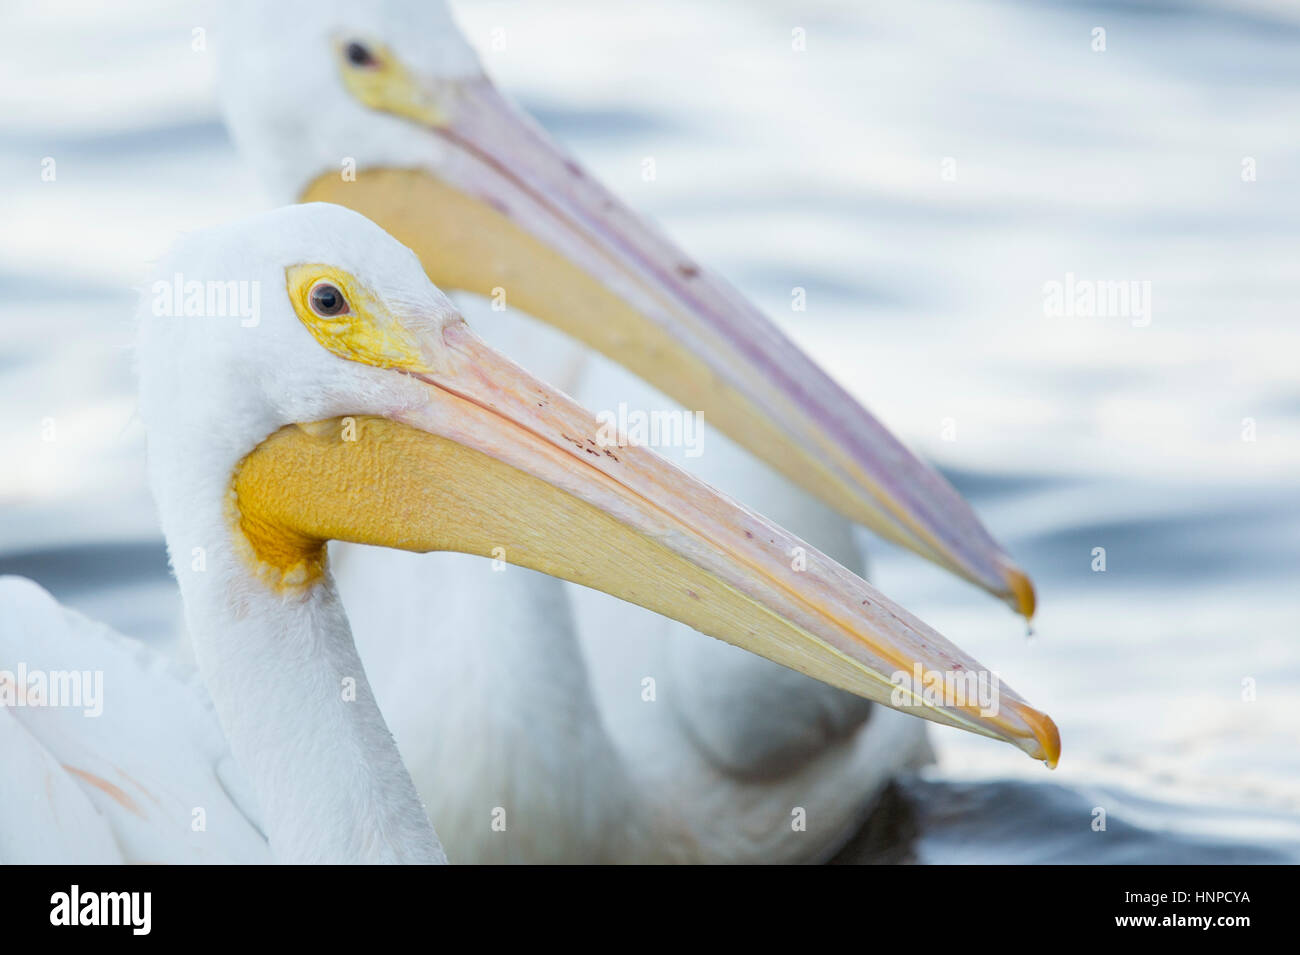 A pair of White Pelicans float in the water in soft light showing off their large yellow and pink beaks. - Stock Image